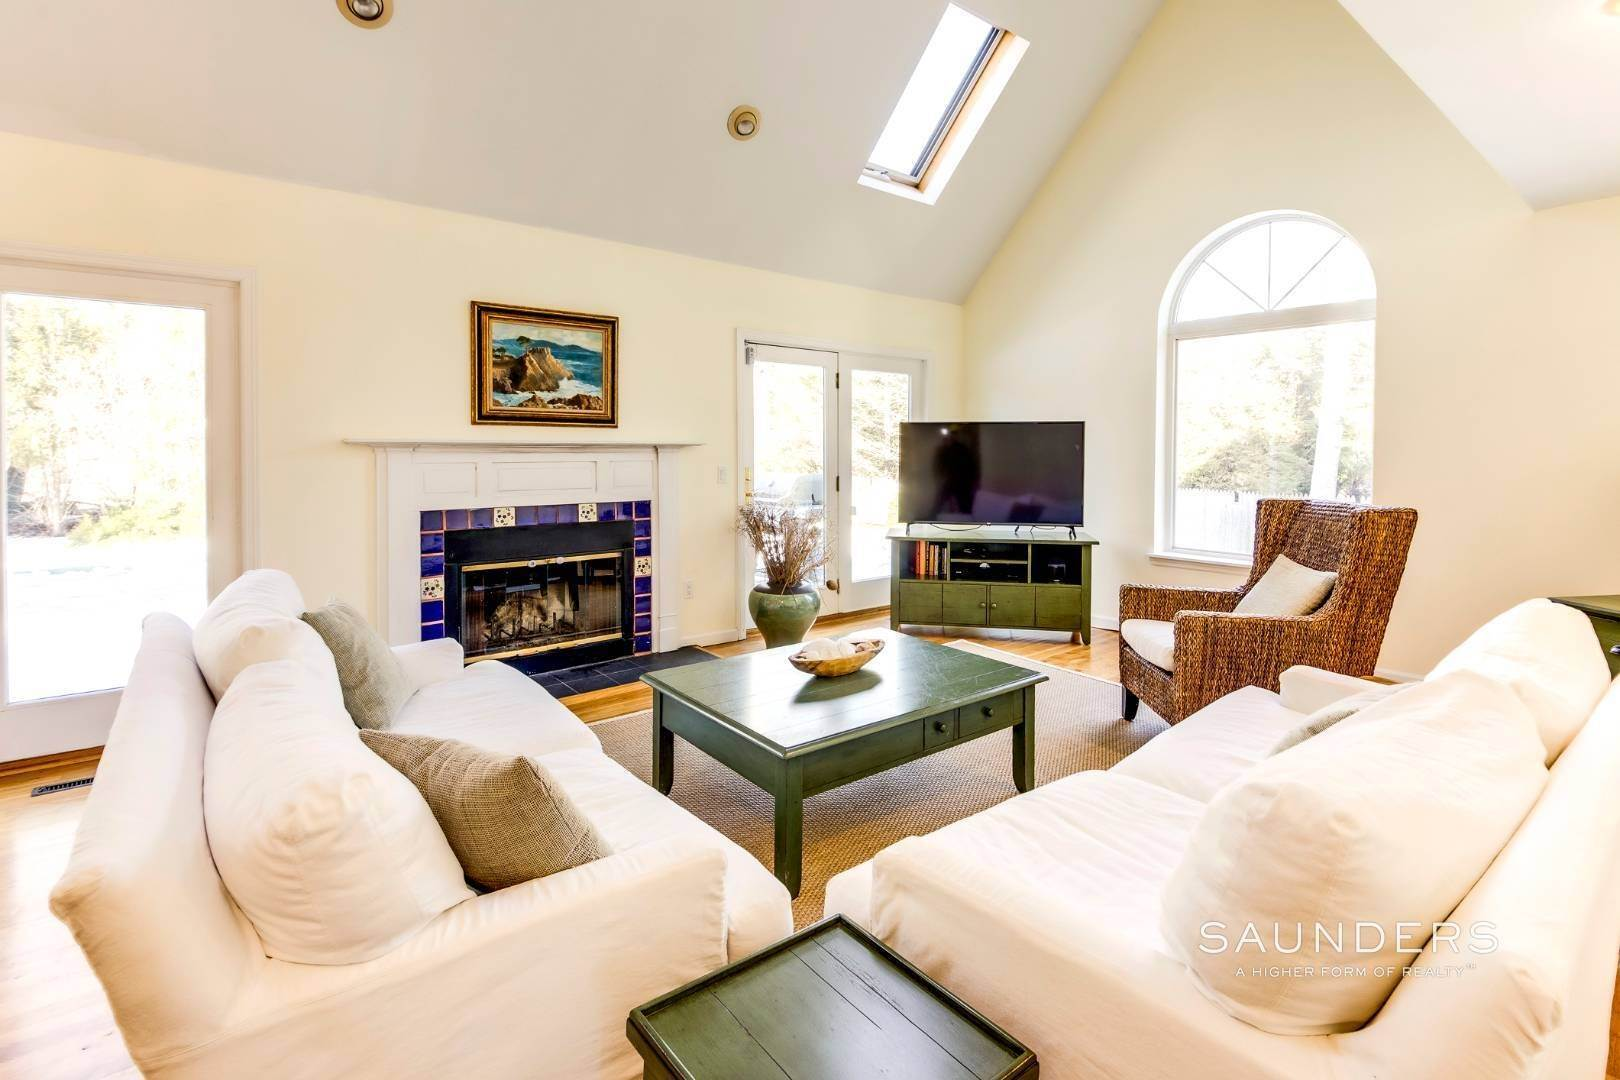 3. Single Family Homes for Sale at Village Edge Traditional 19 Boxwood Street, East Hampton, East Hampton Town, NY 11937